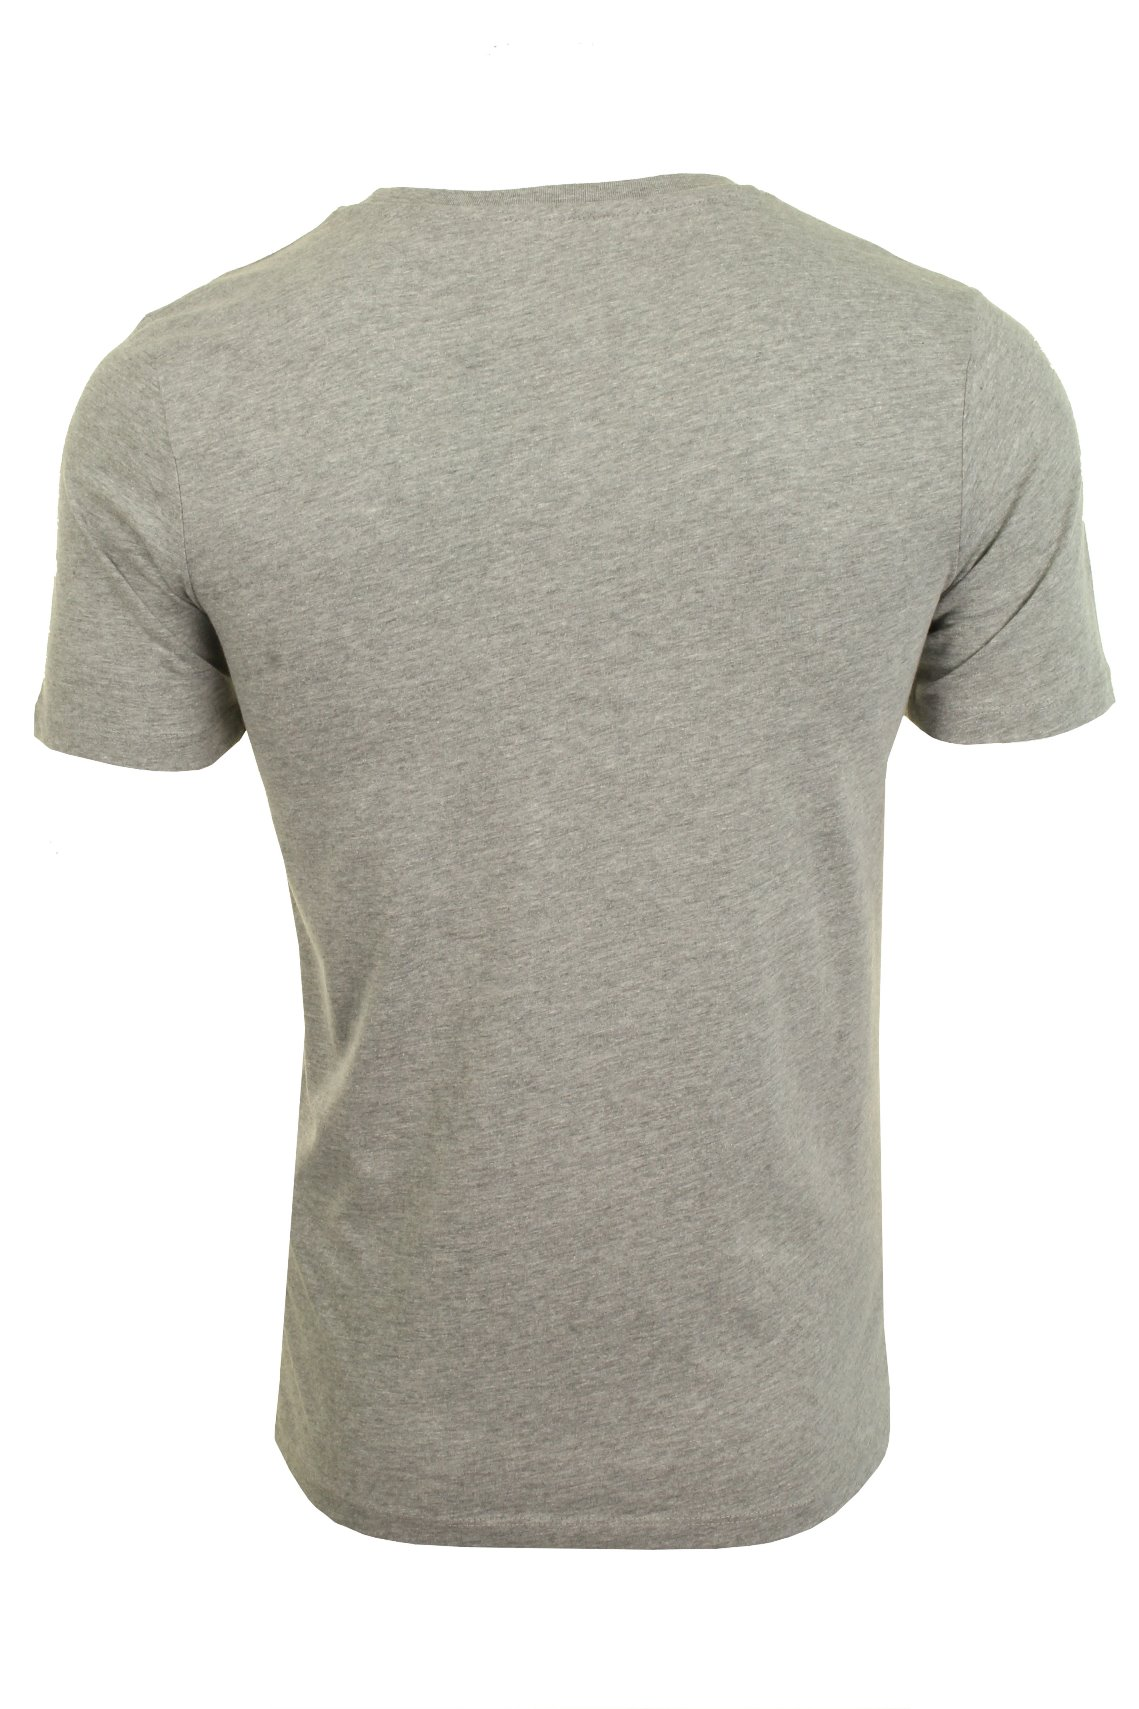 Jack-amp-Jones-Mens-Short-Sleeved-T-Shirt-039-JJEJEANS-039 thumbnail 12